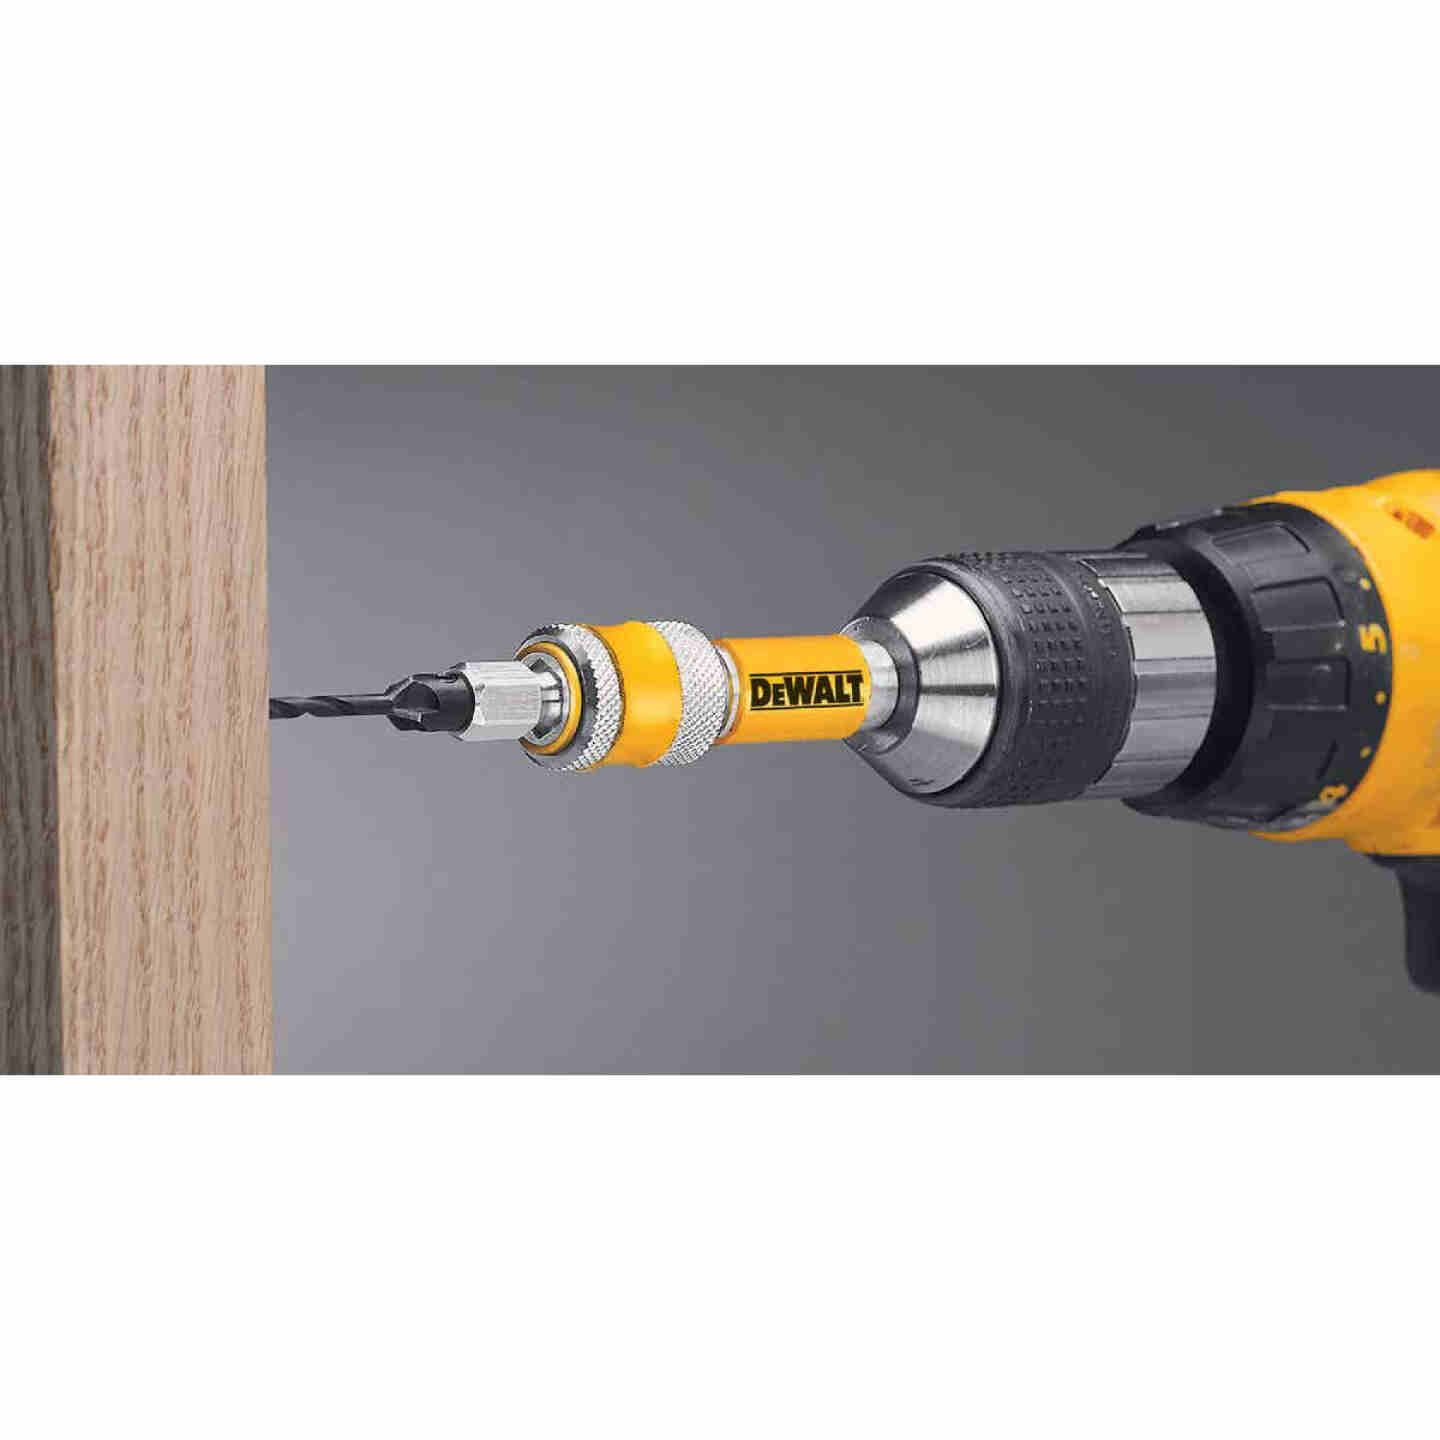 DeWalt #6 1/4 In. Black Oxide Drill & Drive Unit Image 2